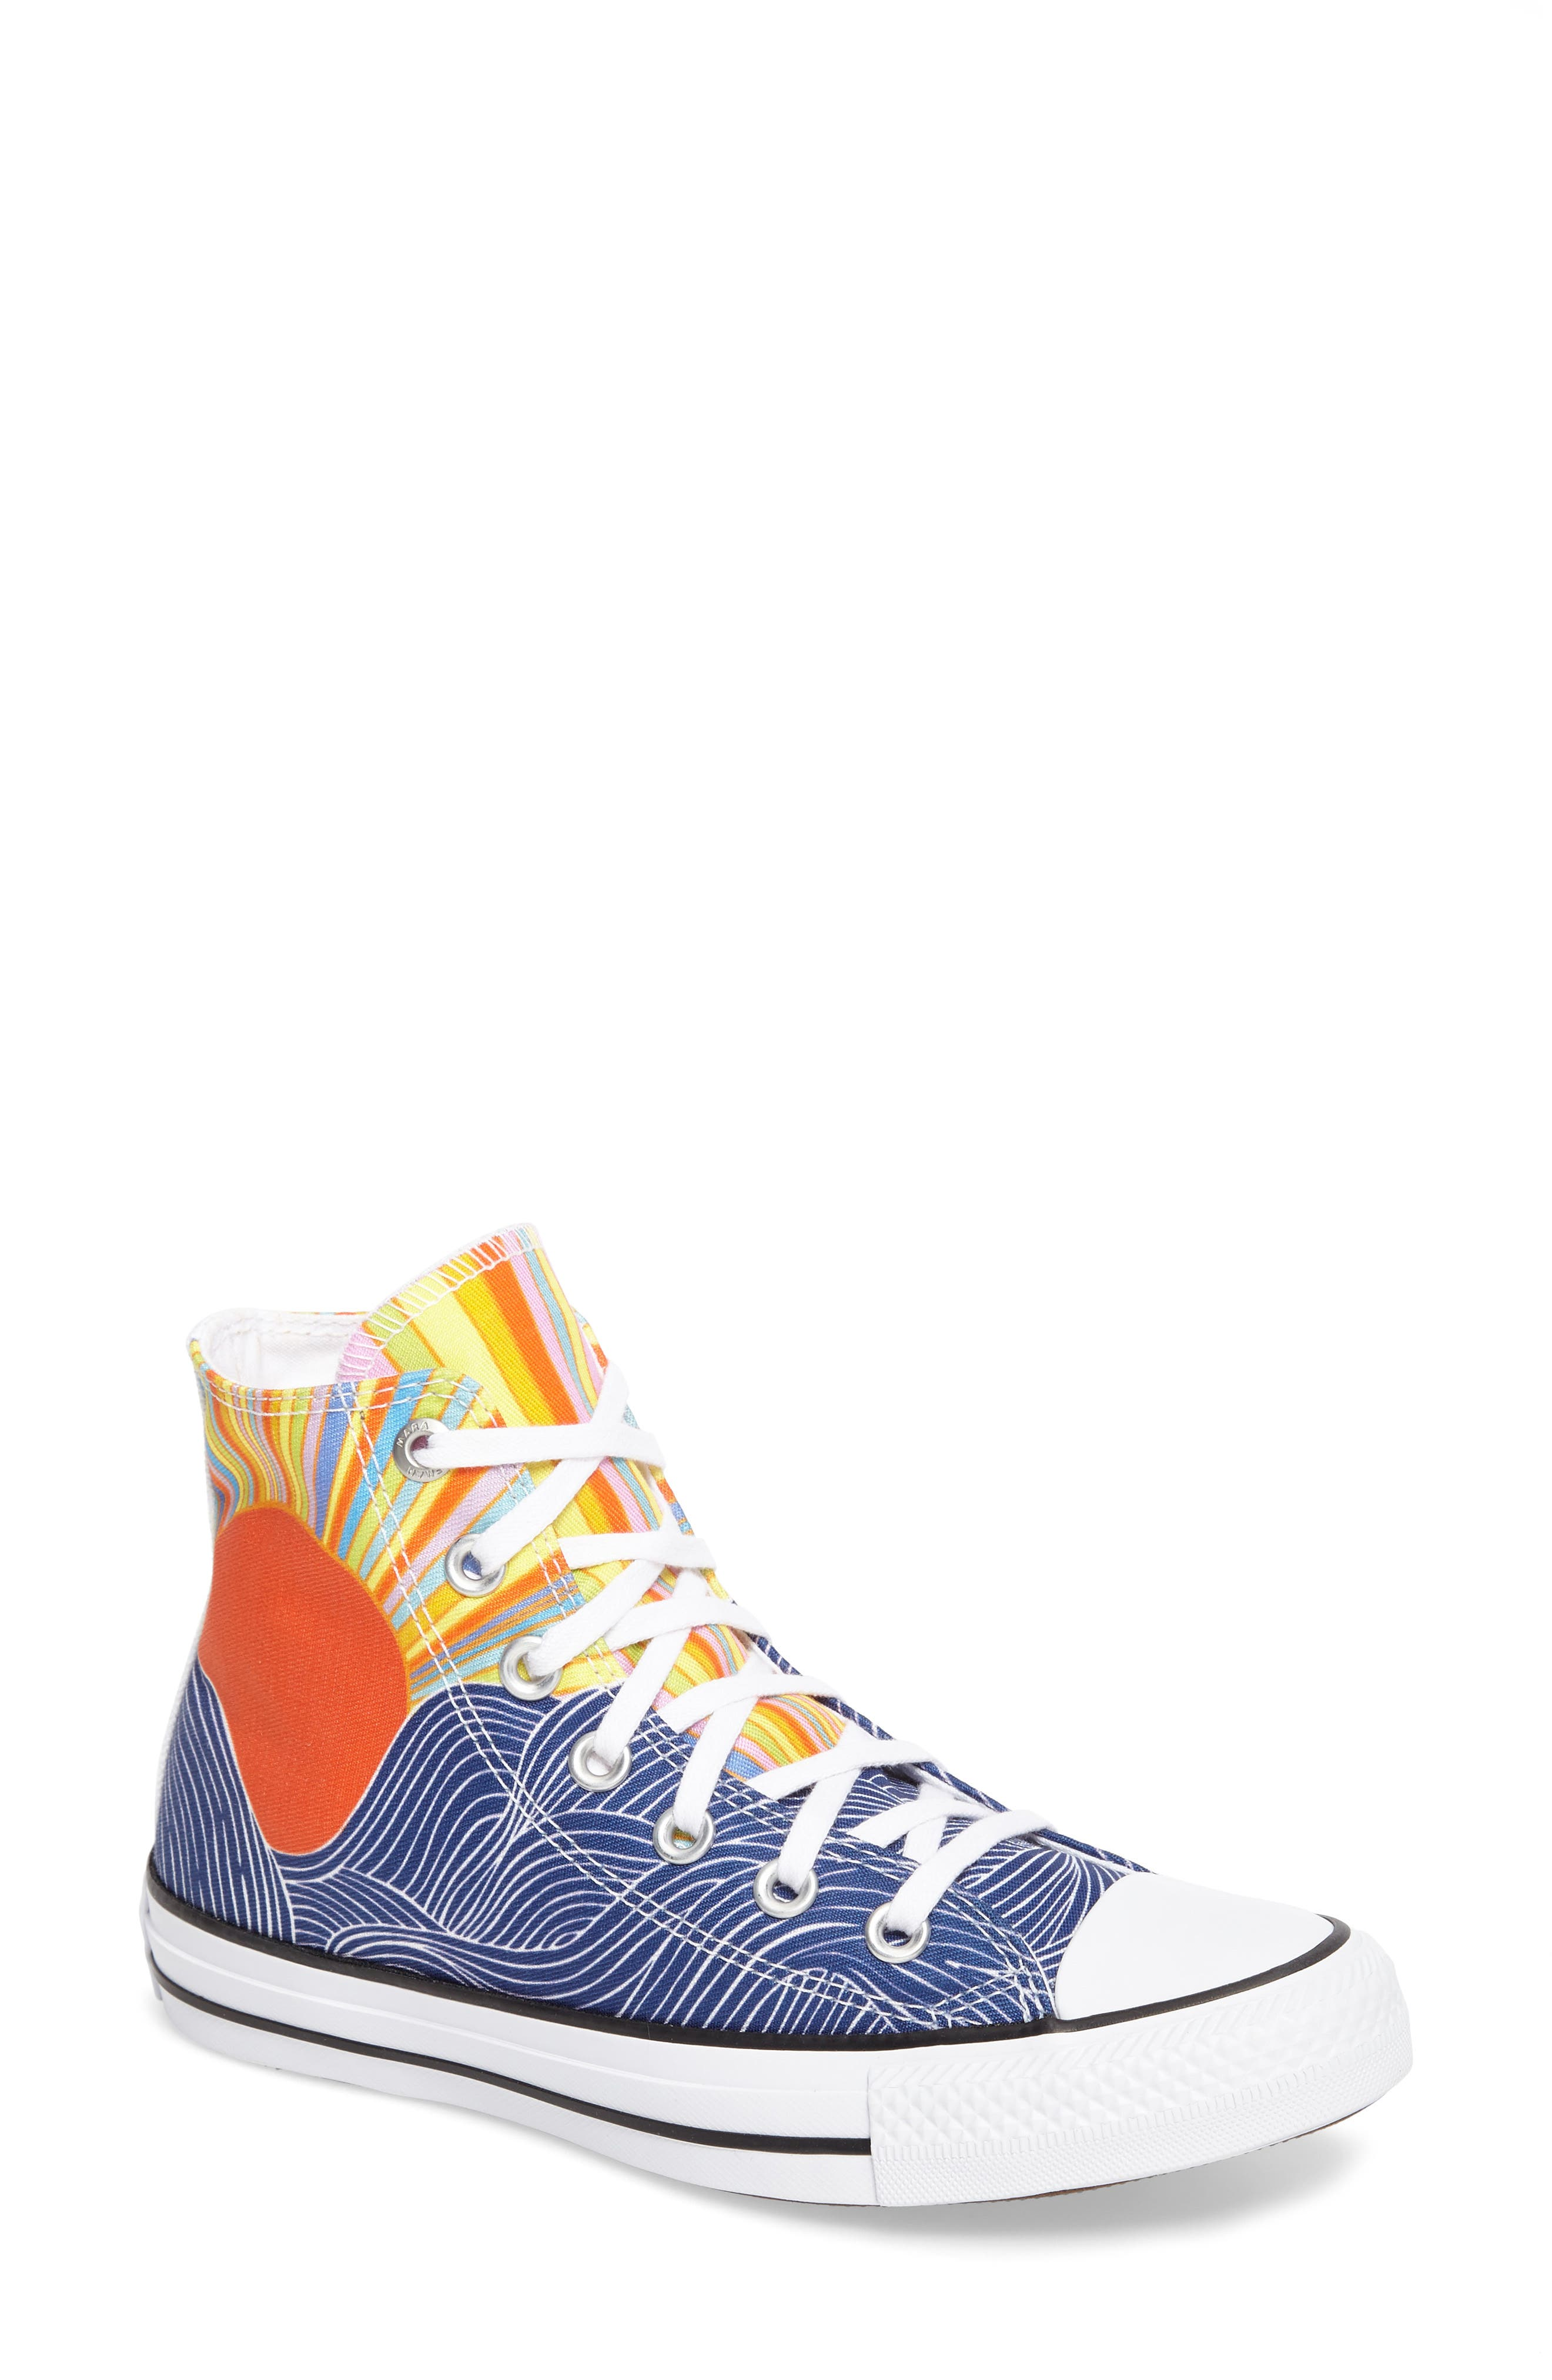 x Mara Hoffman All Star<sup>®</sup> Embroidered High Top Sneaker,                         Main,                         color,